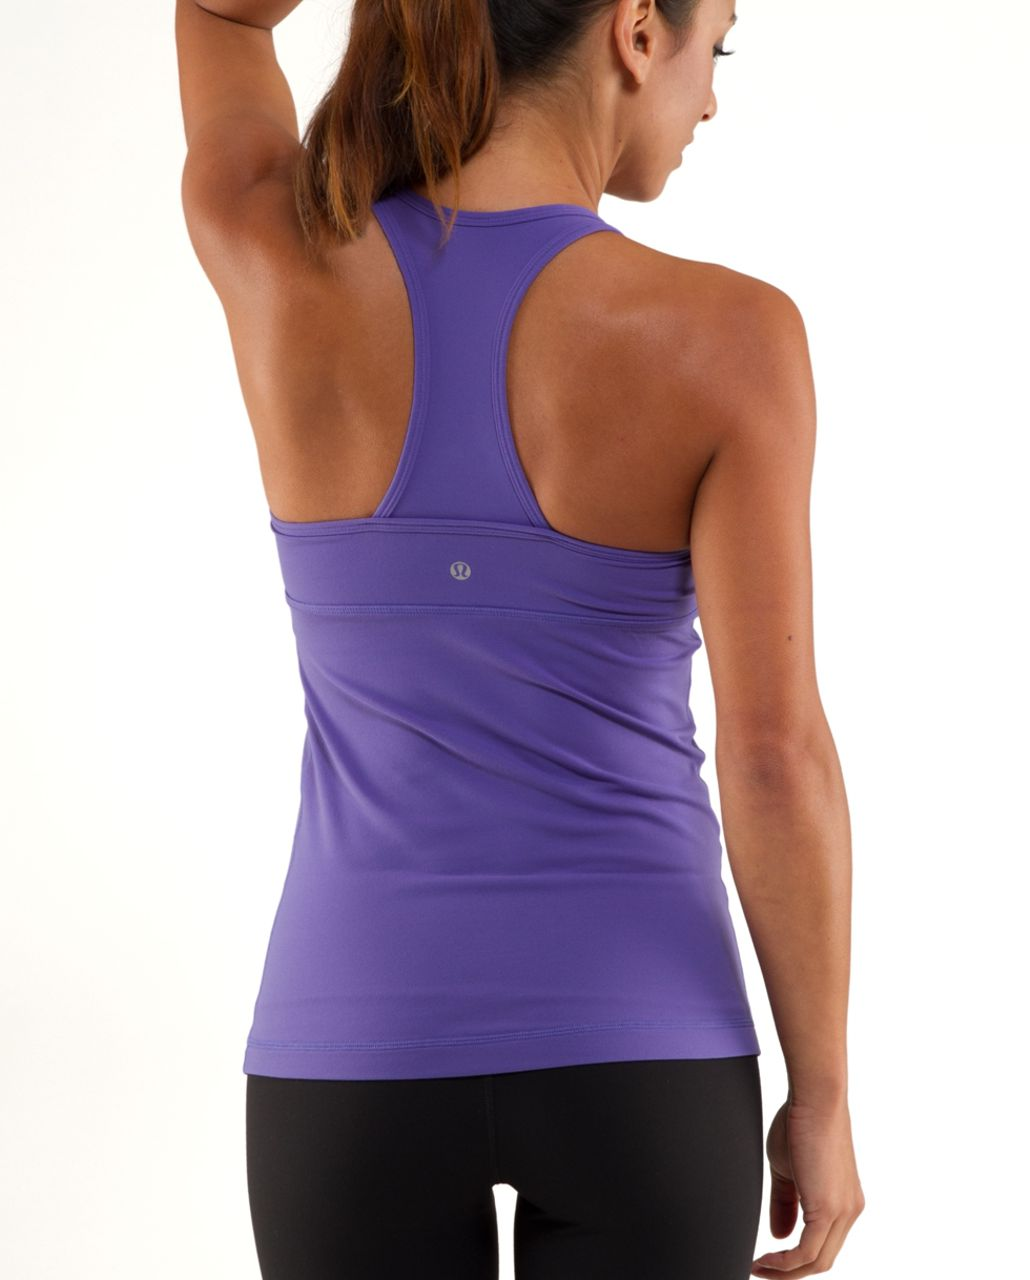 Lululemon Deep V Tank - Persian Purple